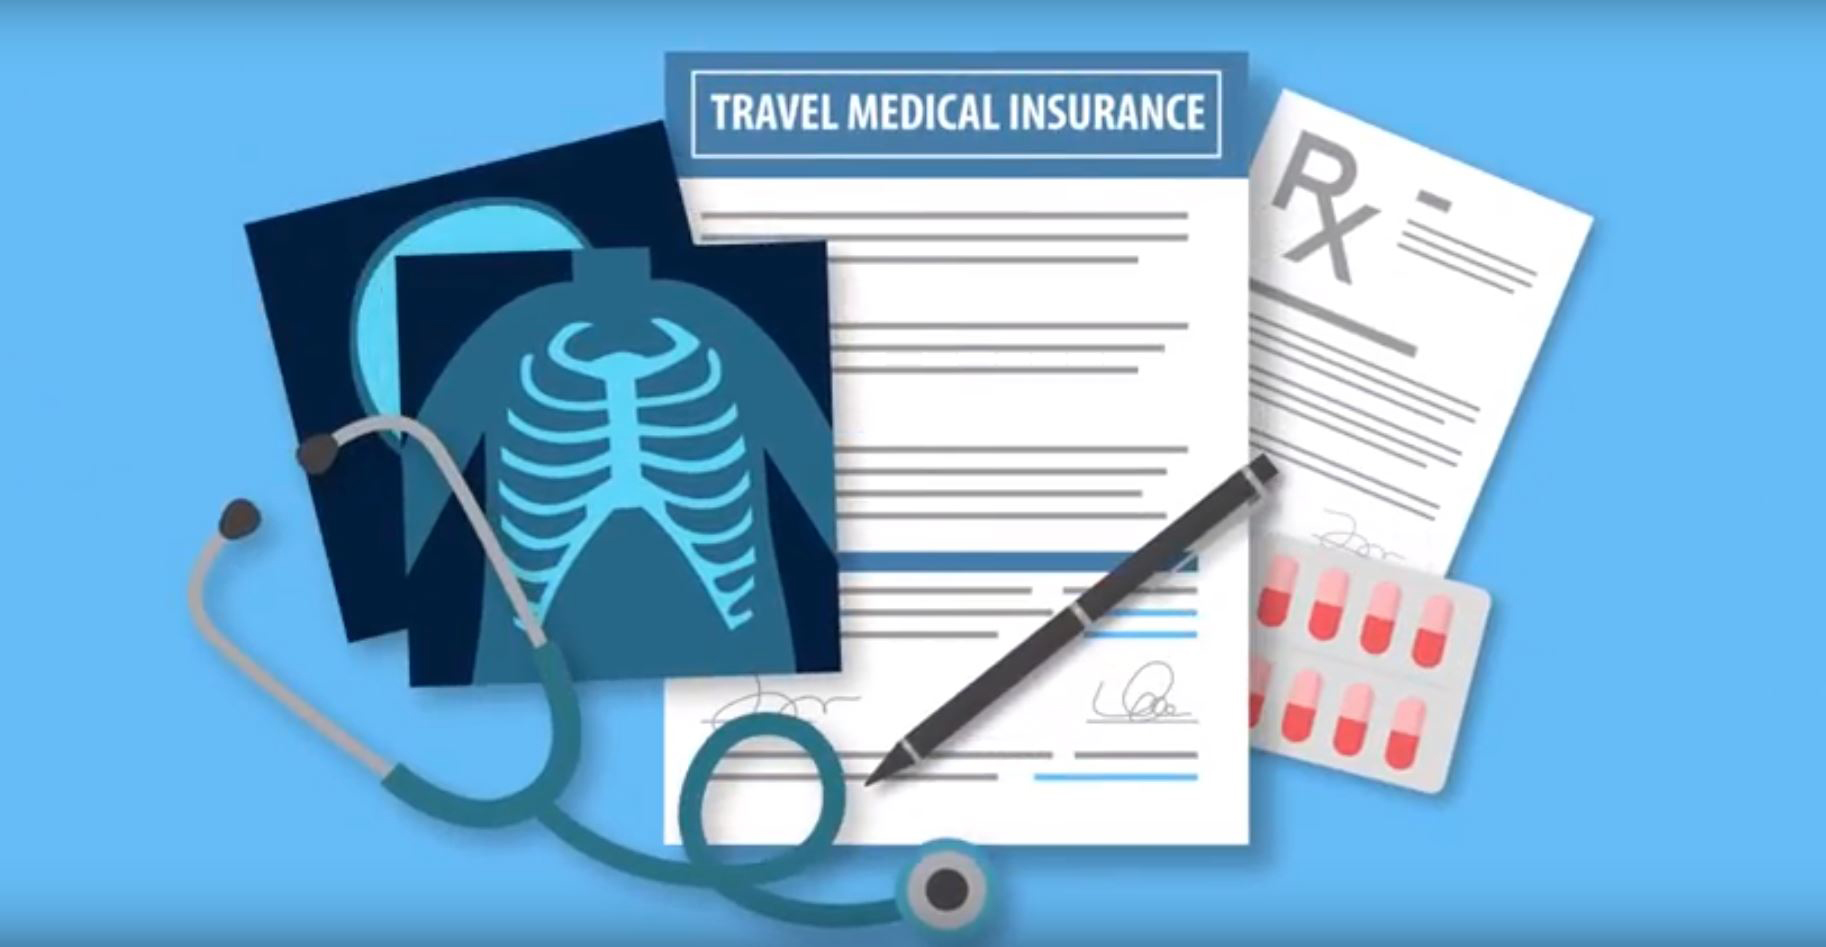 stethoscope-x-ray-travel-medical-policy-with-pen-sitting-on-it